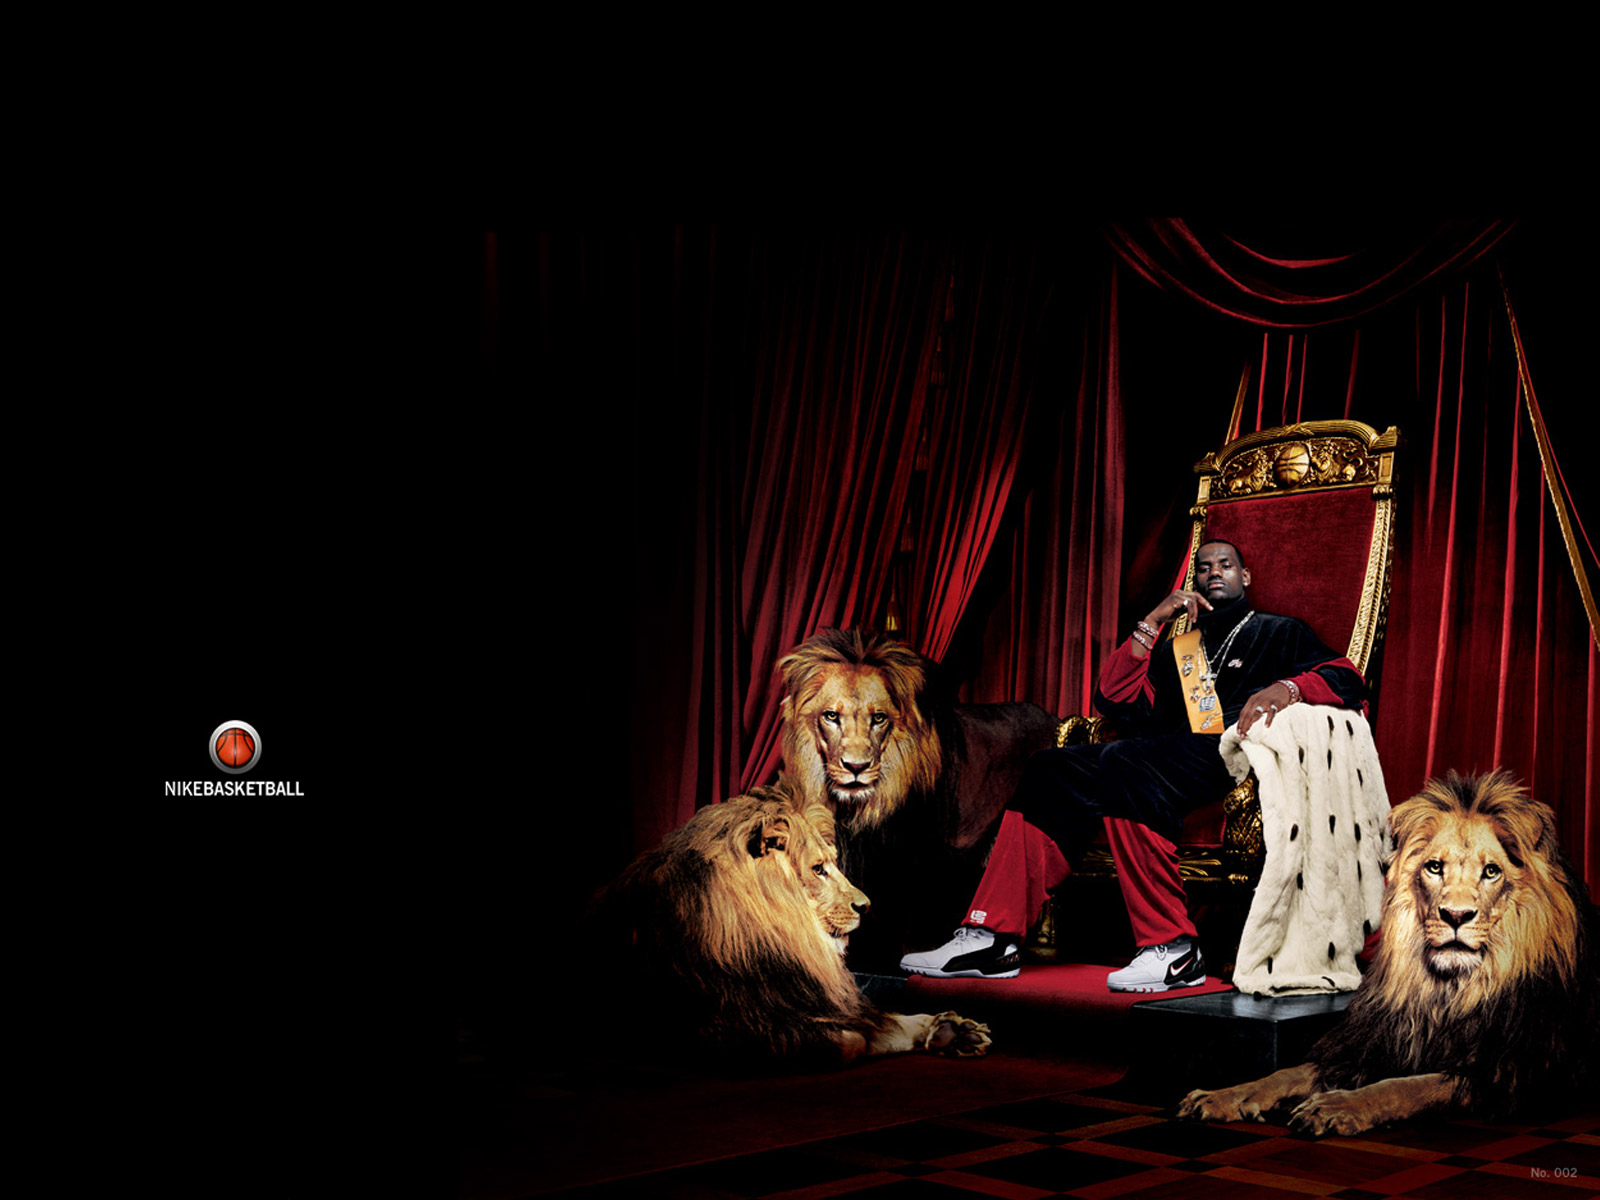 Lebron James Animated Wallpaper Fondo King Lebron James En Fondos De Pantalla